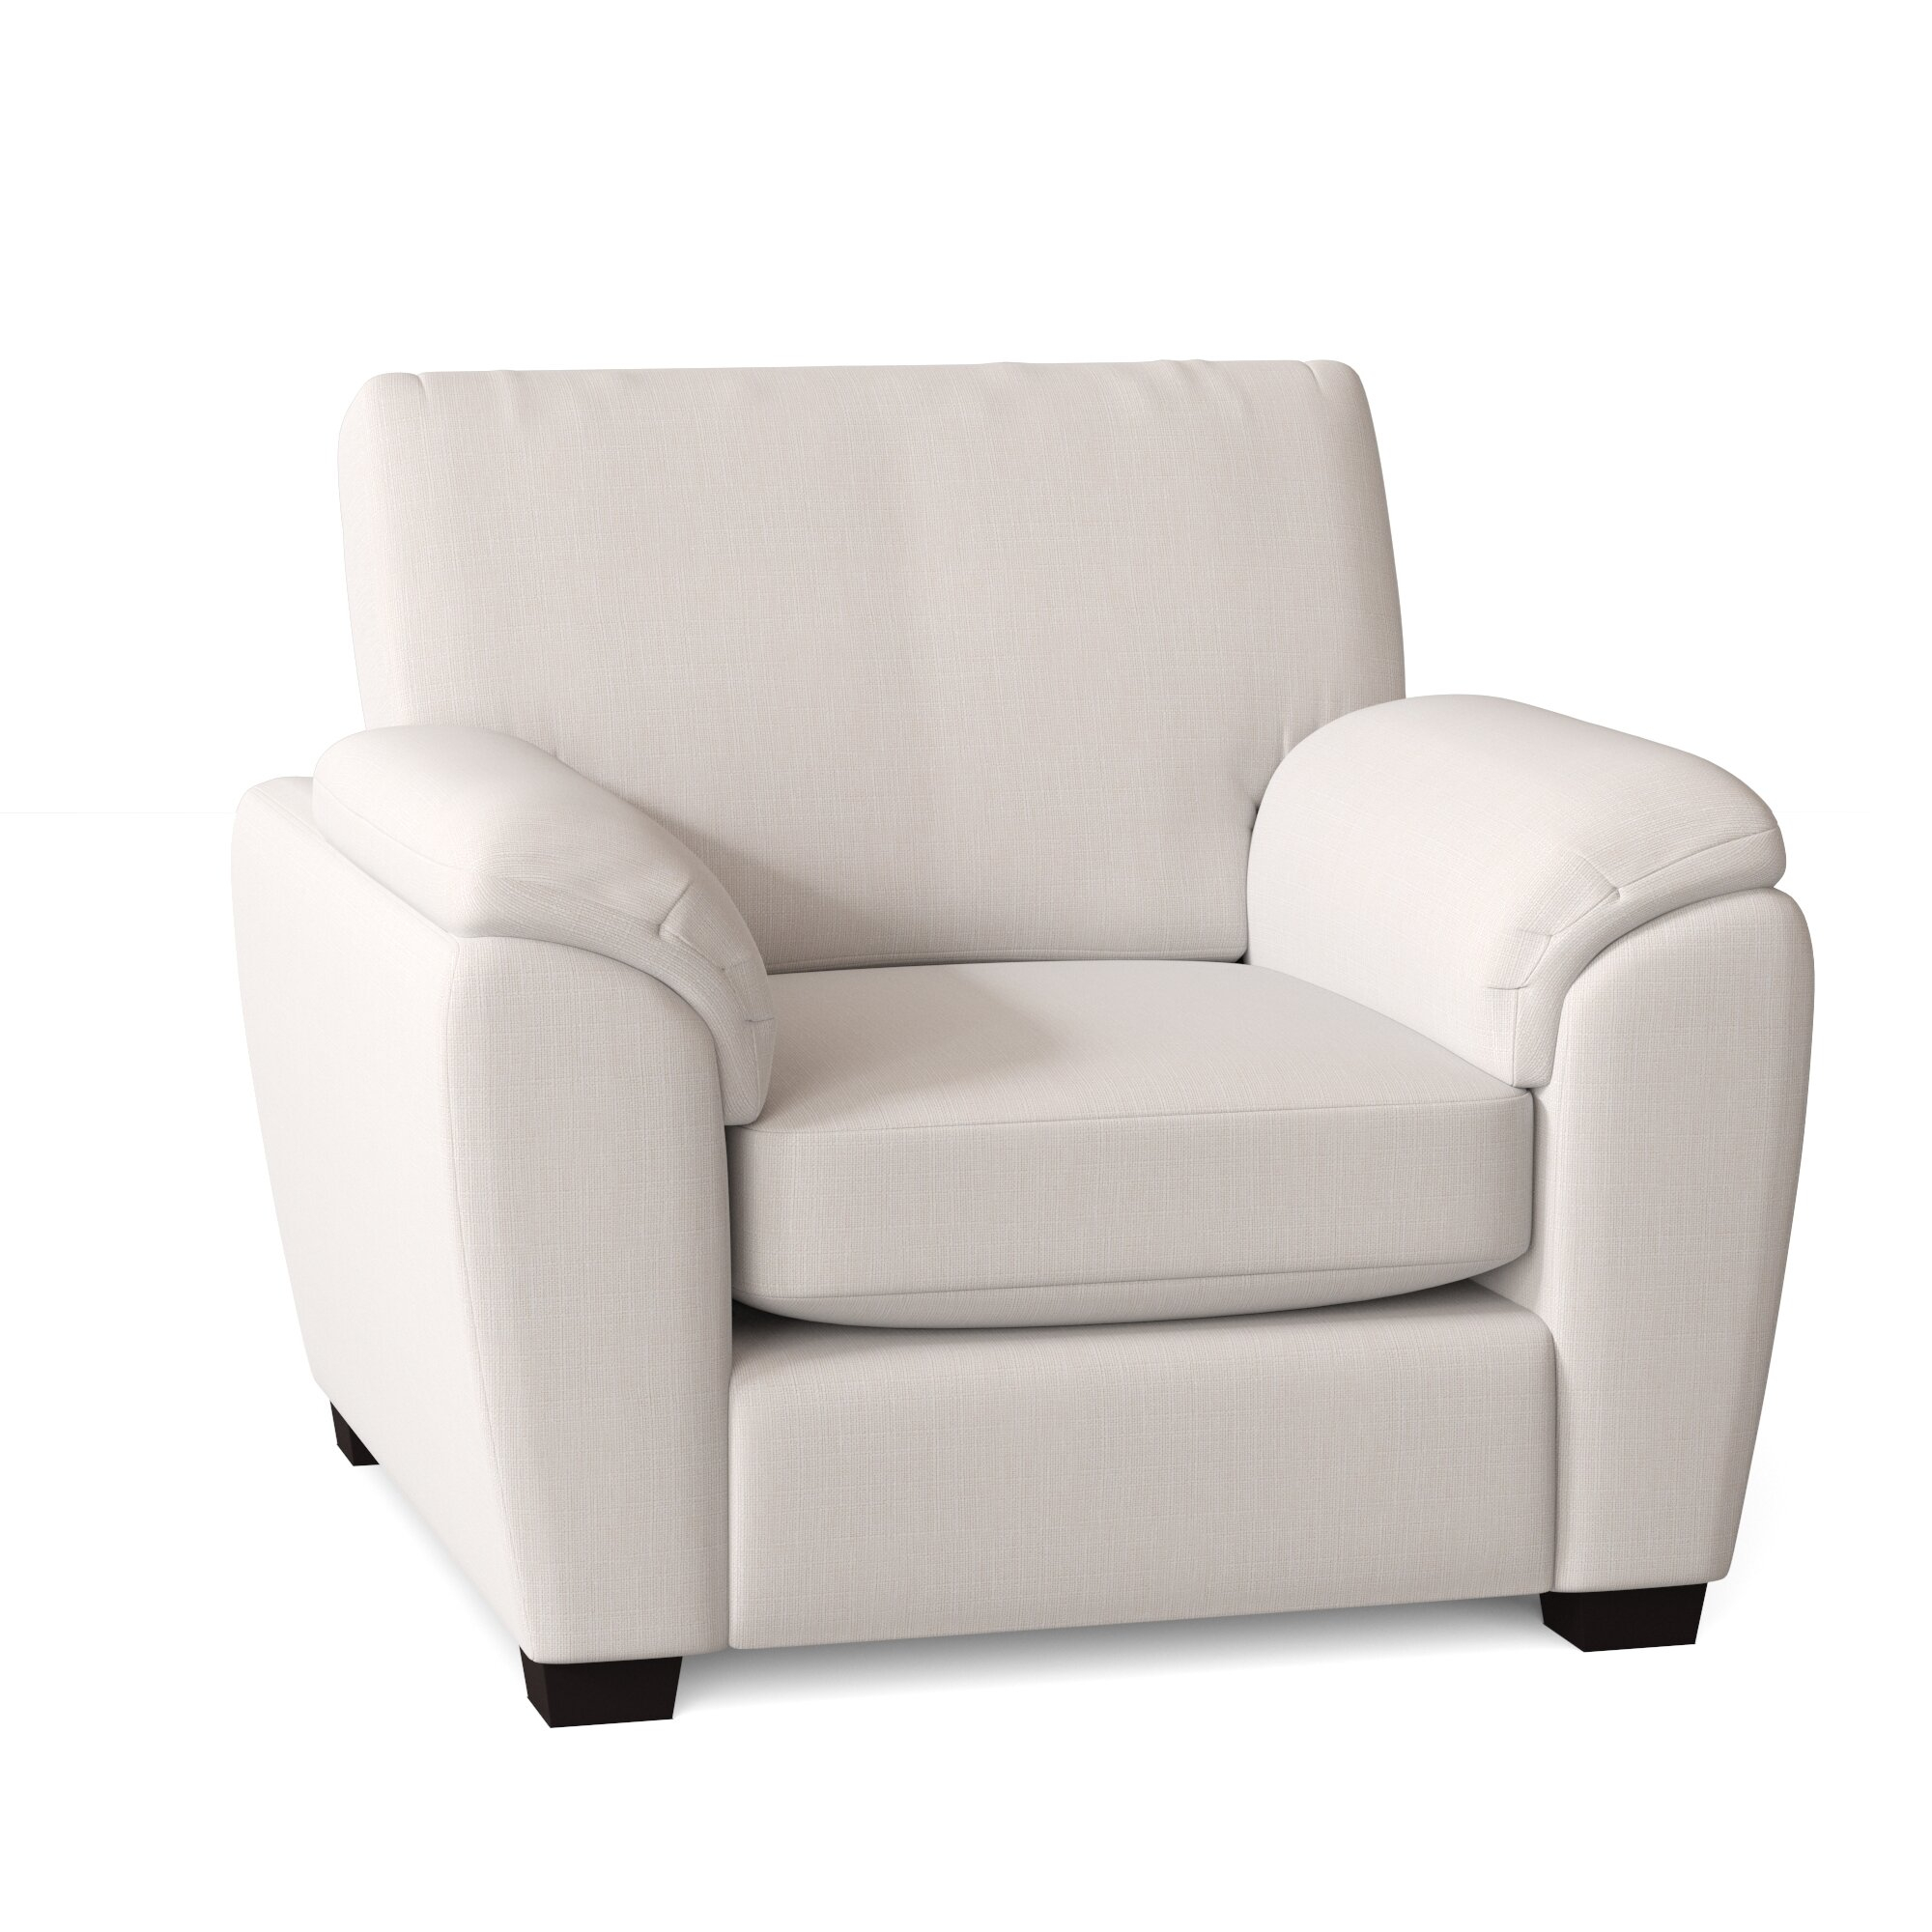 Pillow Top Arm Solid Accent Chairs You'Ll Love In 2021 | Wayfair With Regard To Brookhhurst Avina Armchairs (View 6 of 15)